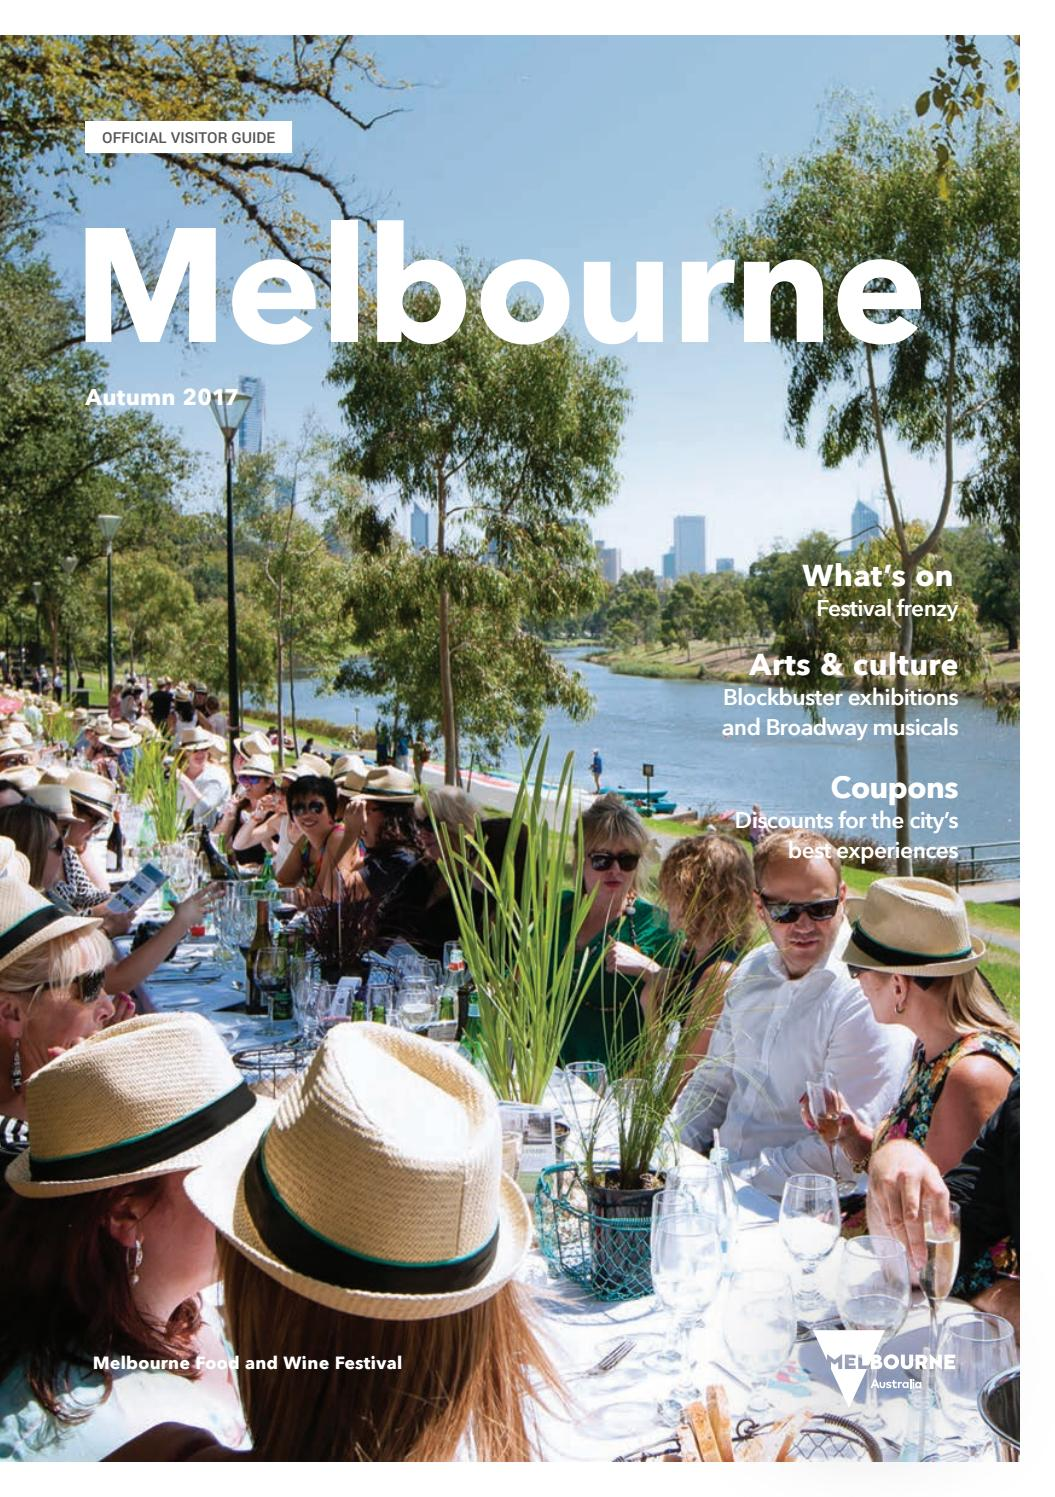 Melbourne official visitors guide autumn 2017 by destination melbourne official visitors guide autumn 2017 by destination melbourne issuu fandeluxe